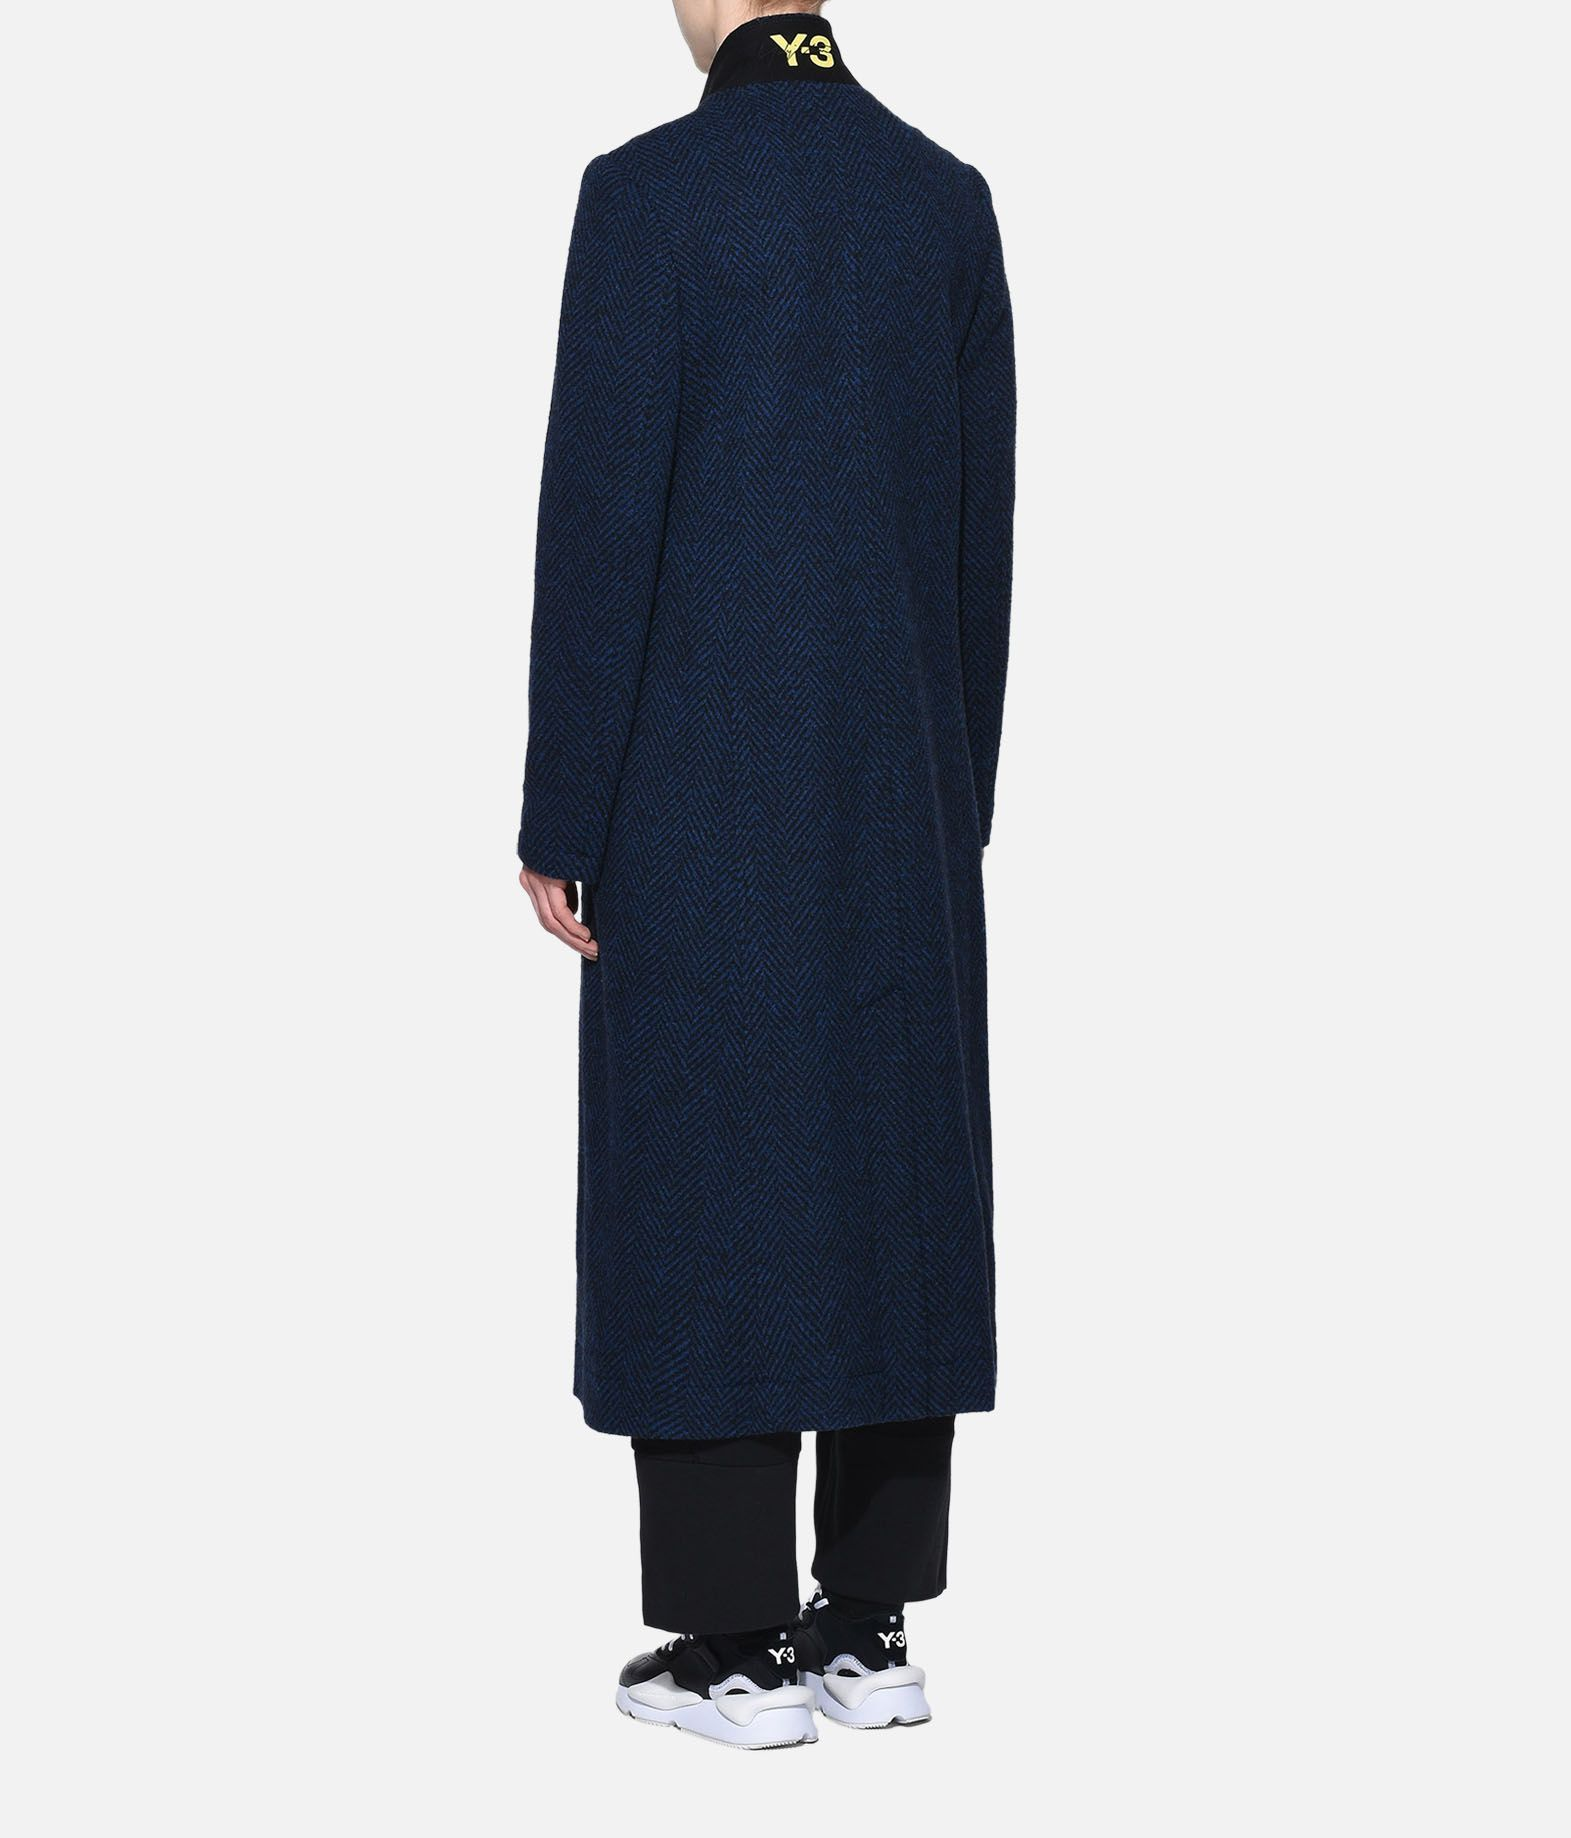 Y-3 Y-3 3-Stripes Tailored Wool Coat Coat Woman e